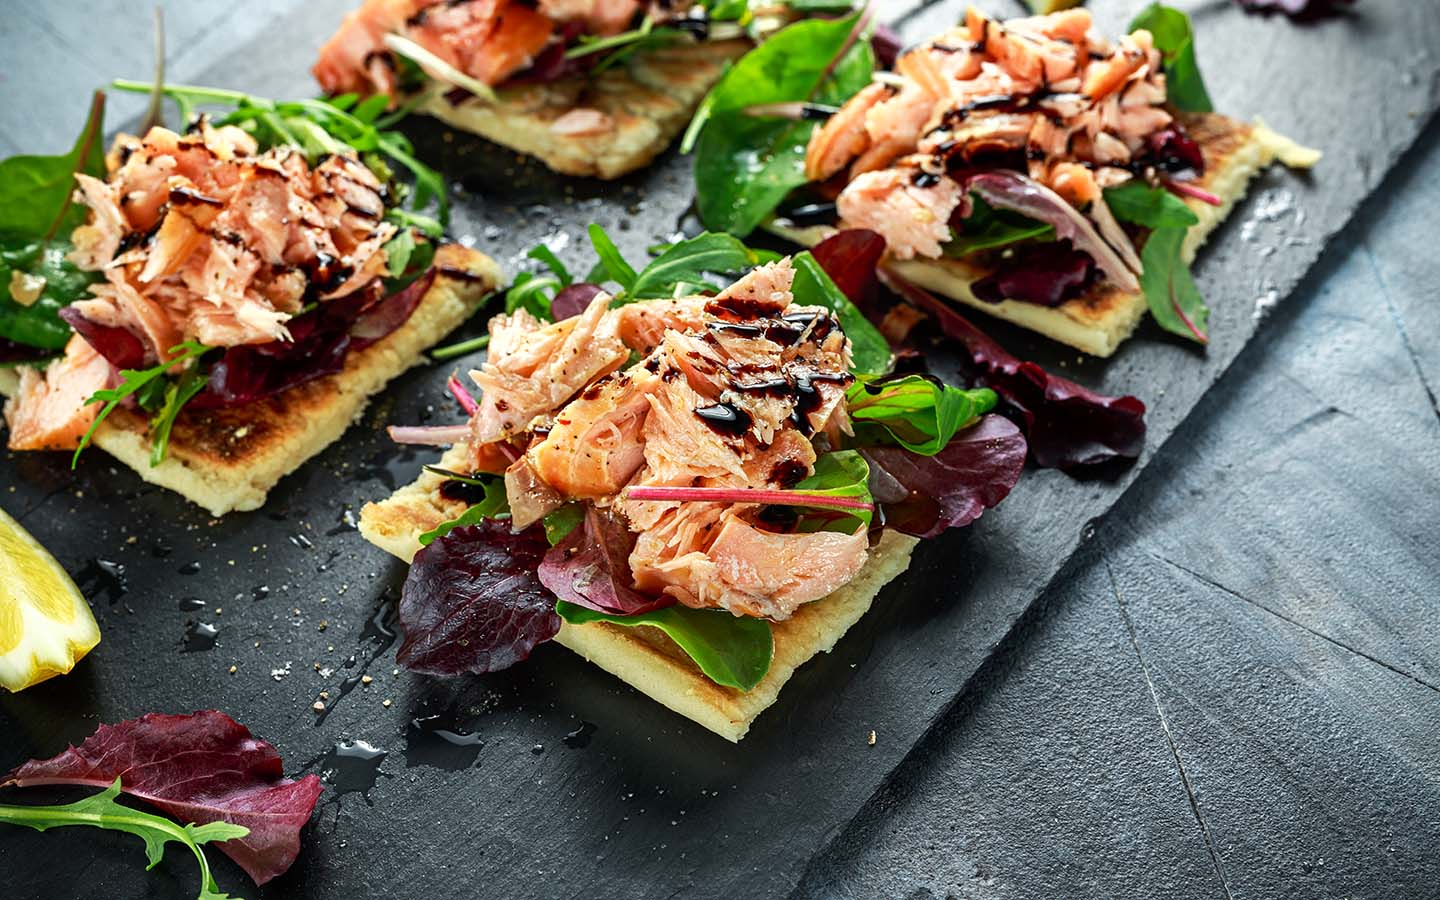 Smoked Salmon and salad bites